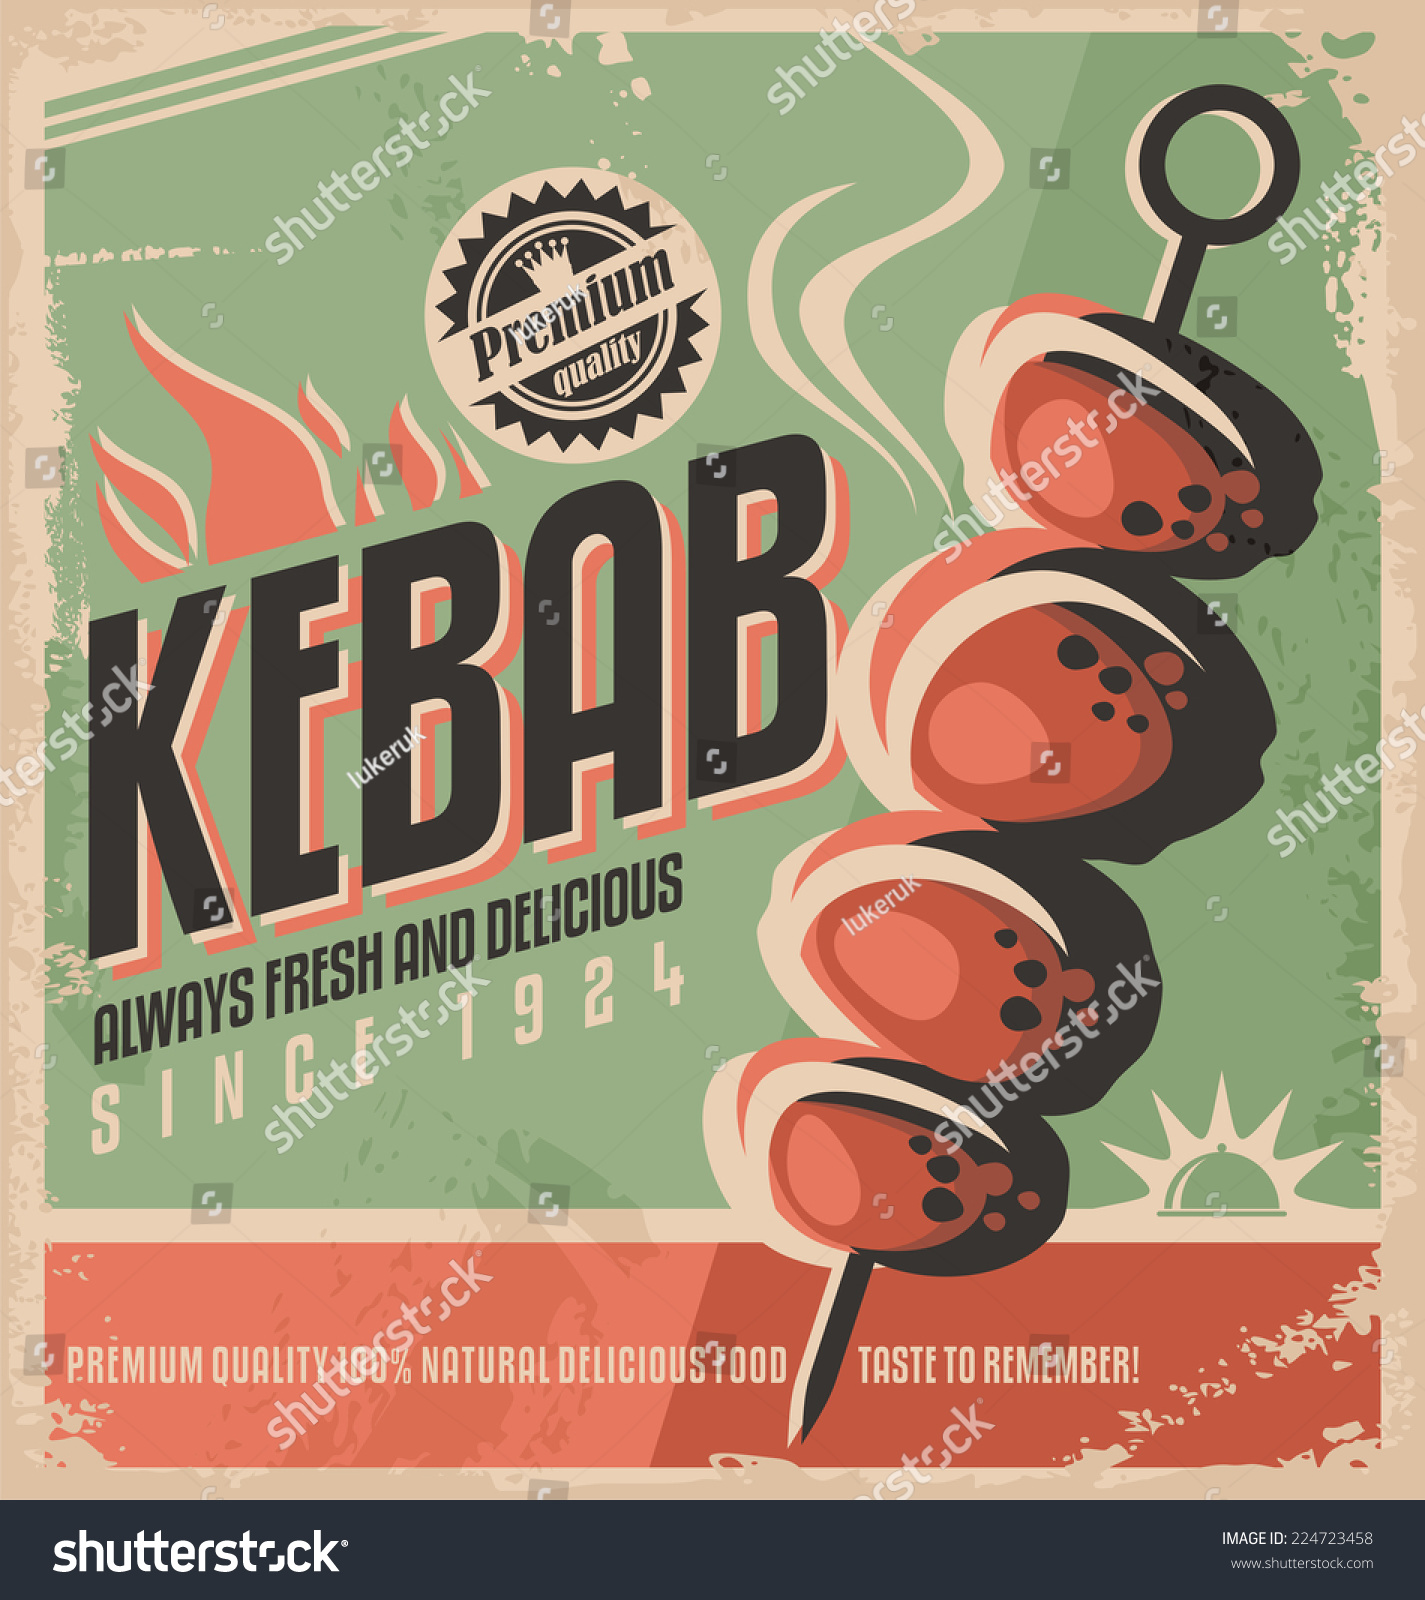 Kebab retro poster design concept promotional stock vector for Ad designs